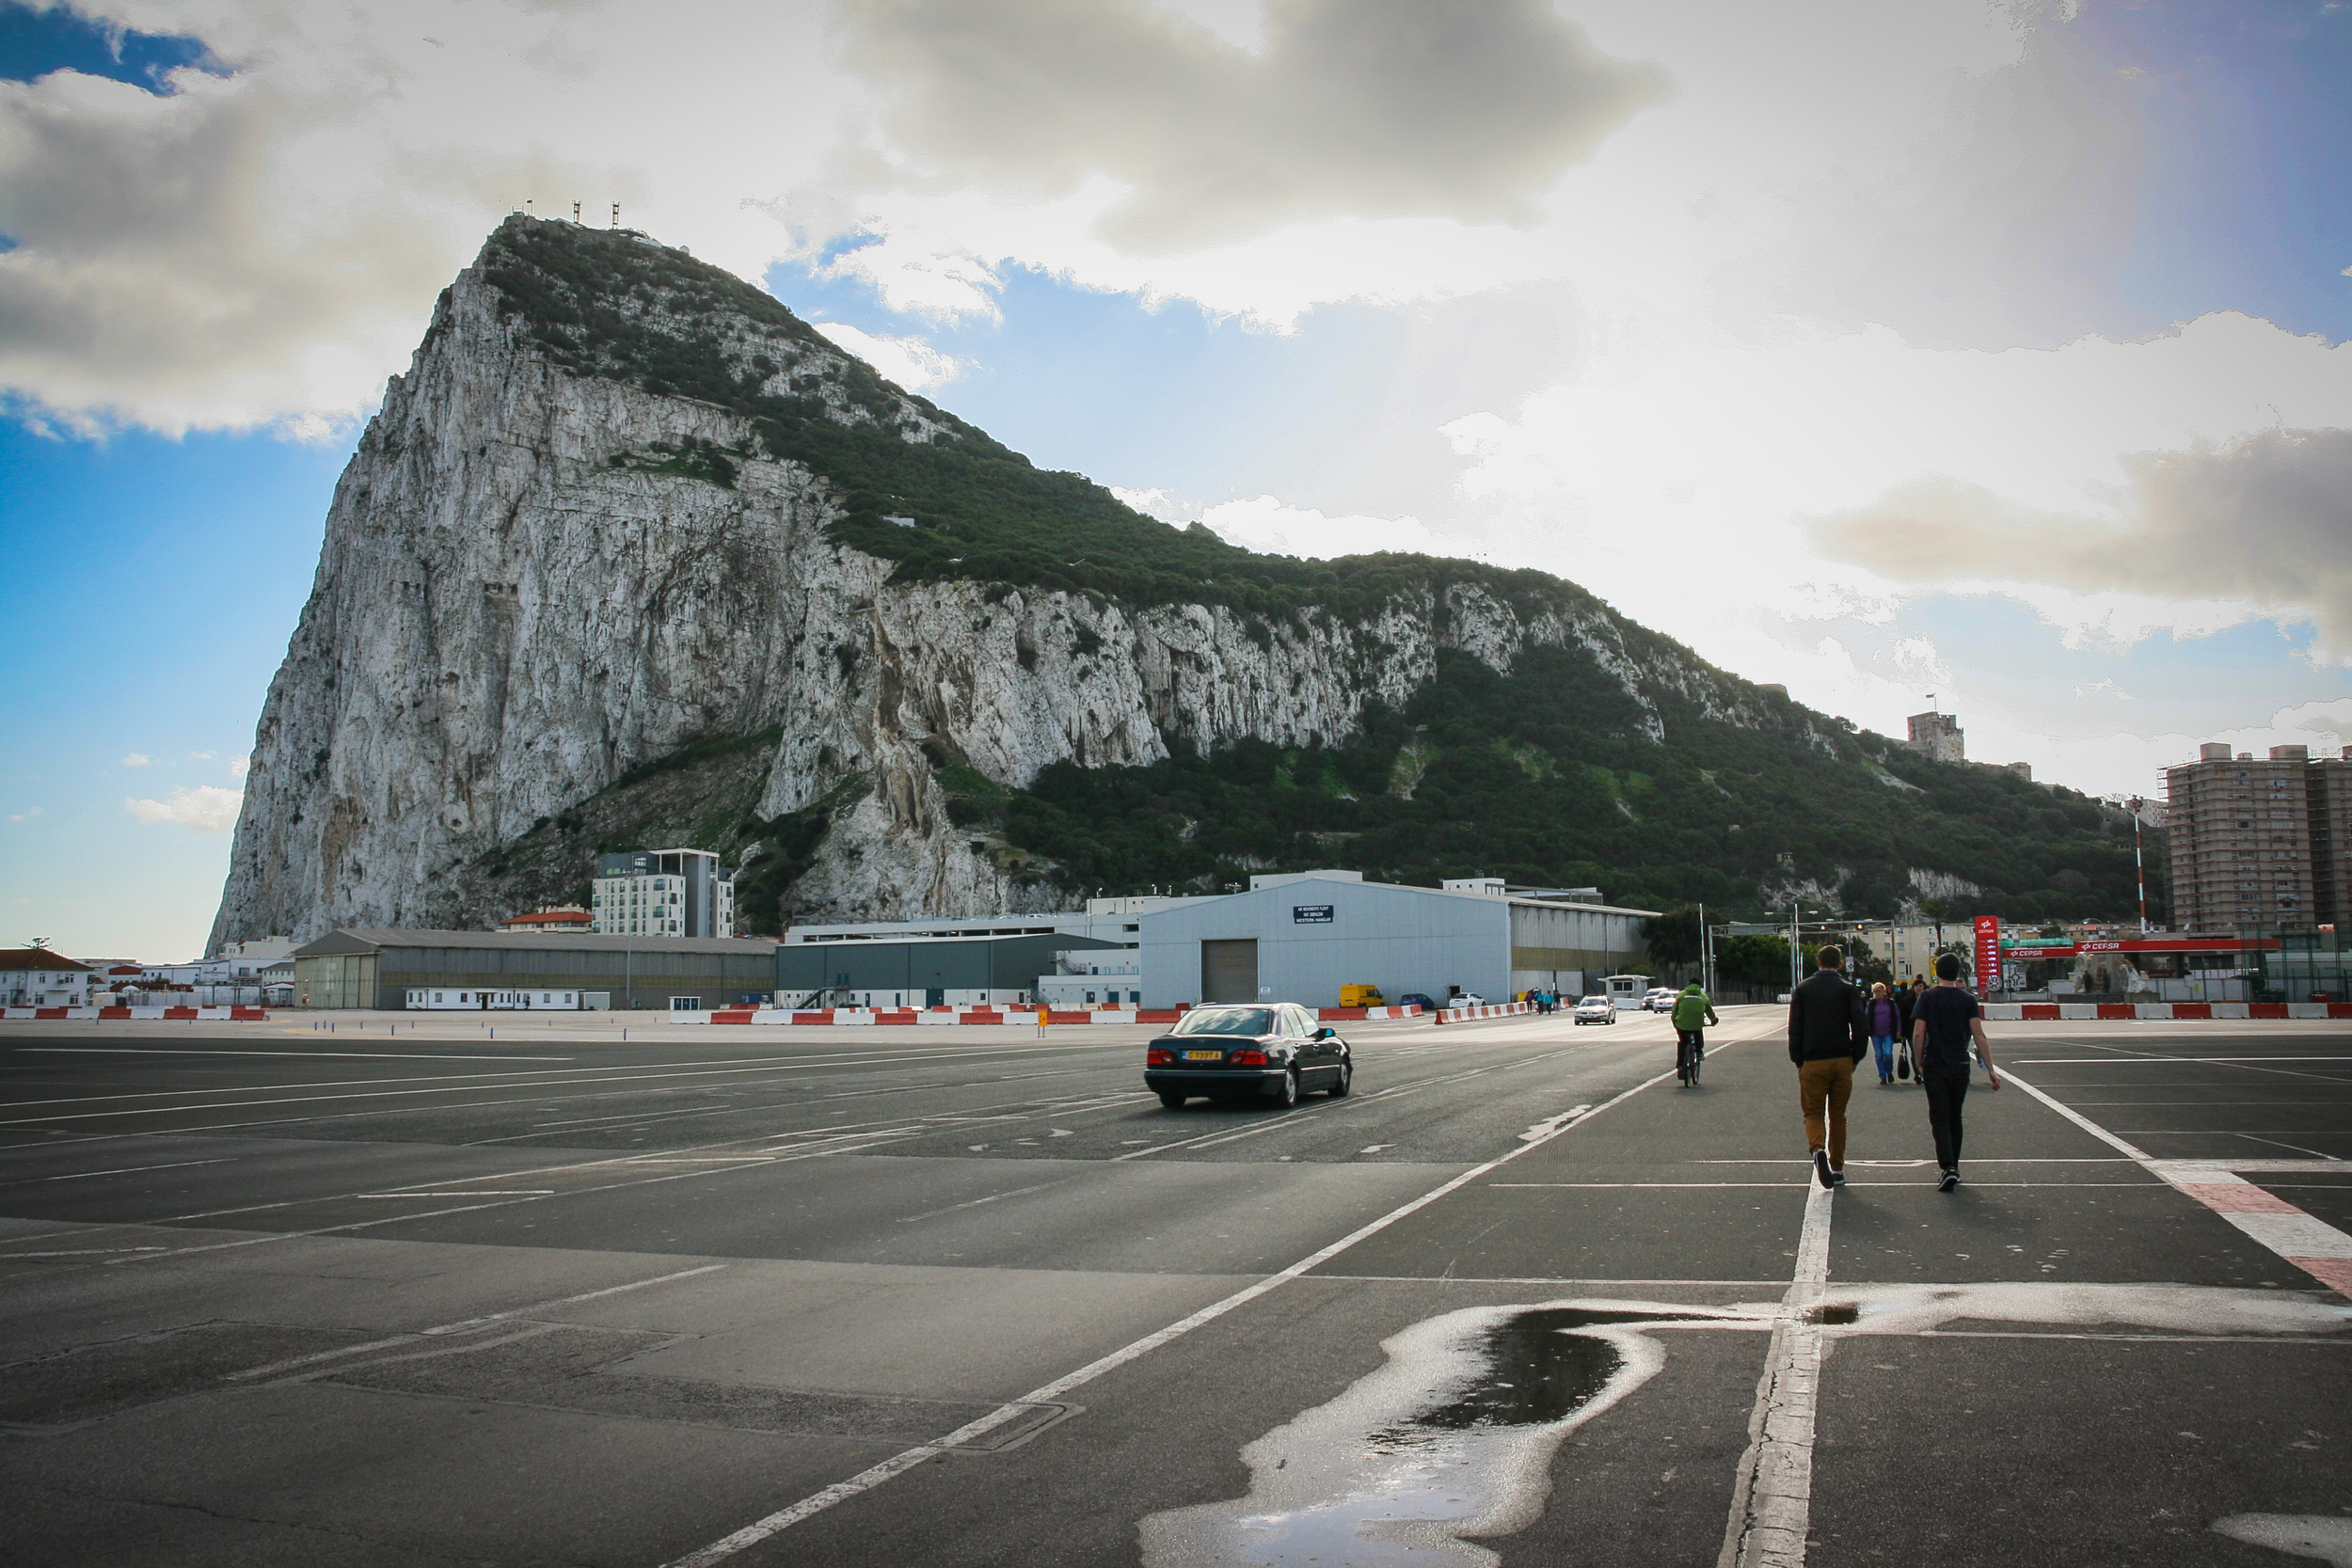 The Rock.  This famous landmark can be seen from far away... Especially when crossing an airport runway on foot...